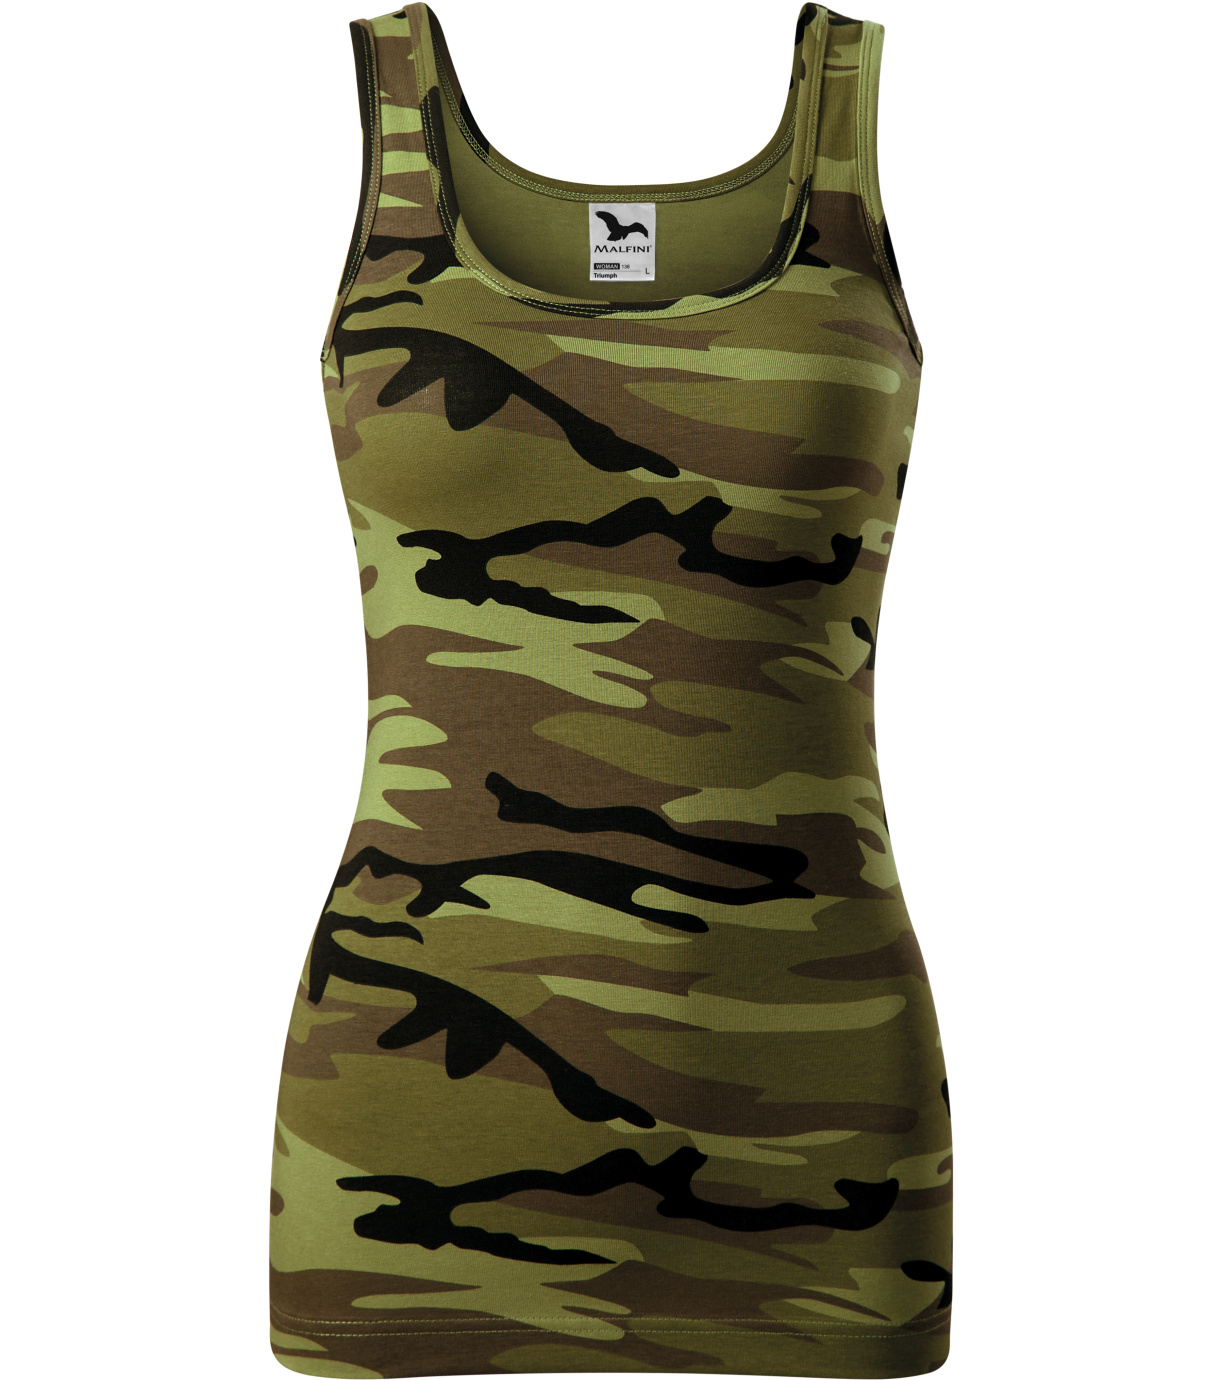 34 - camouflage green